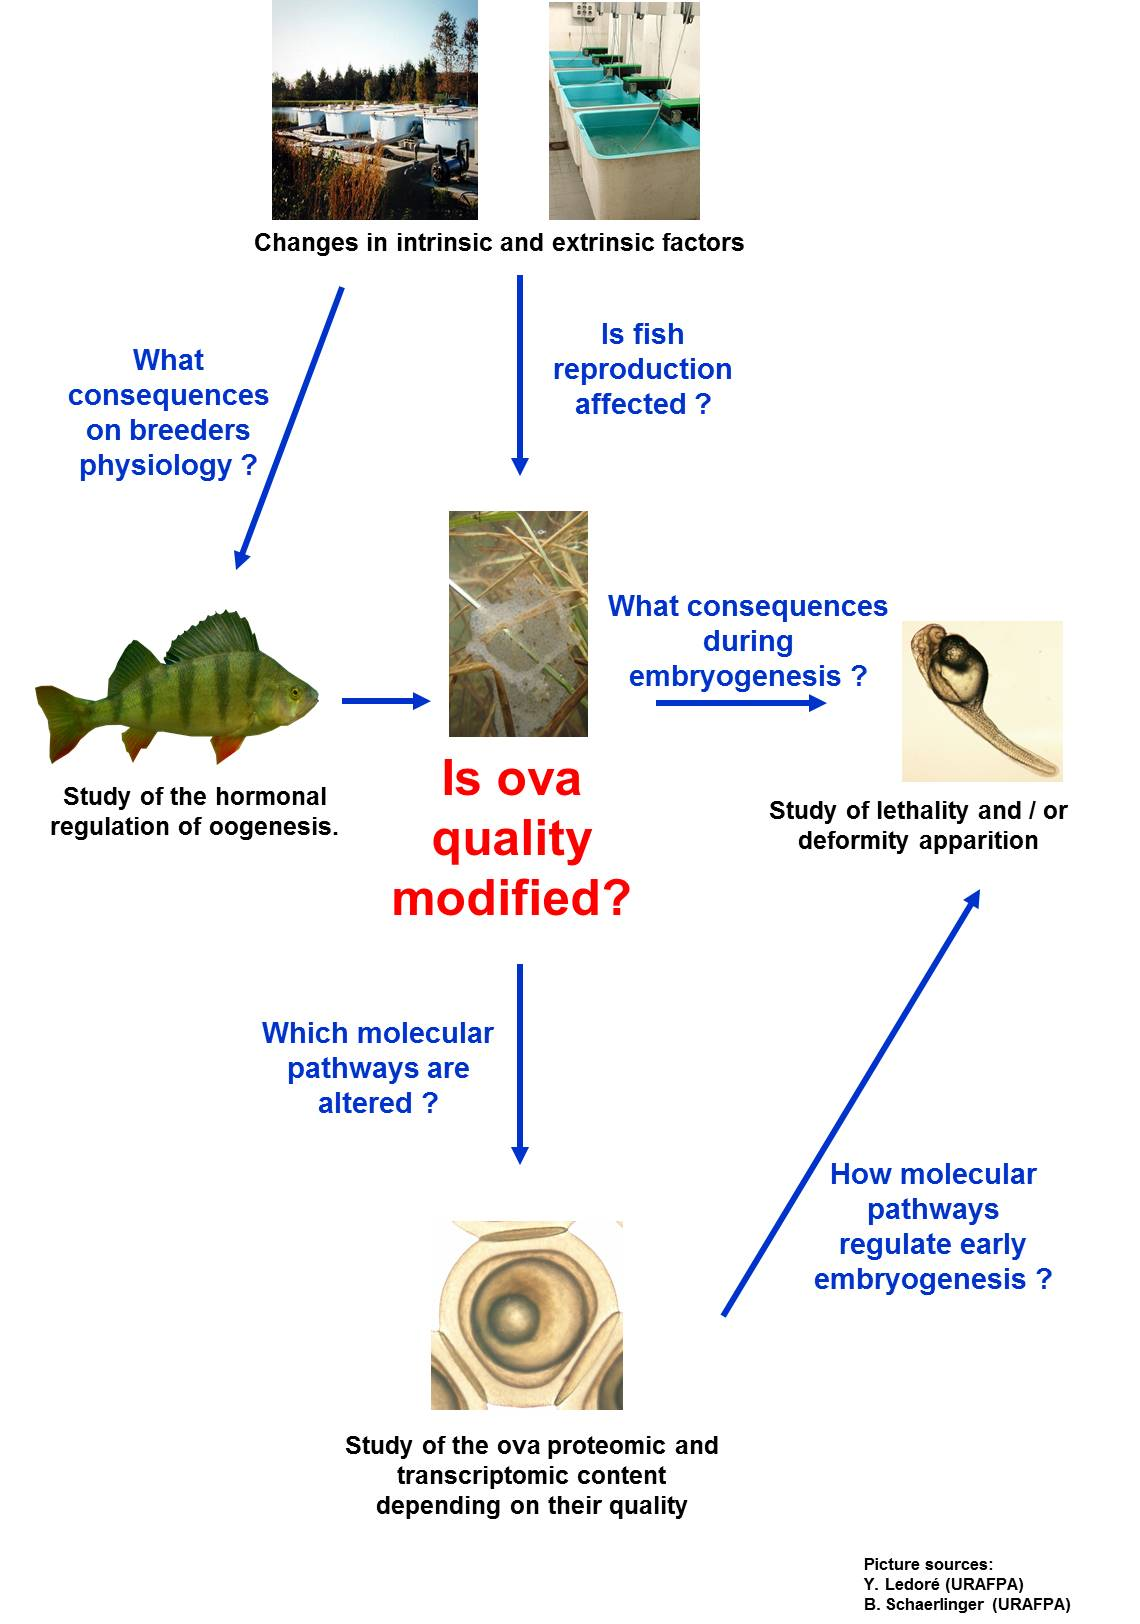 Freshwater fish life cycle - Neuroendocrinology And Physiology Of Fish Life Cycles Research Unit Biology Of Aquatic Organisms And Ecosystems Borea Sorbonne Universit S Cnrs